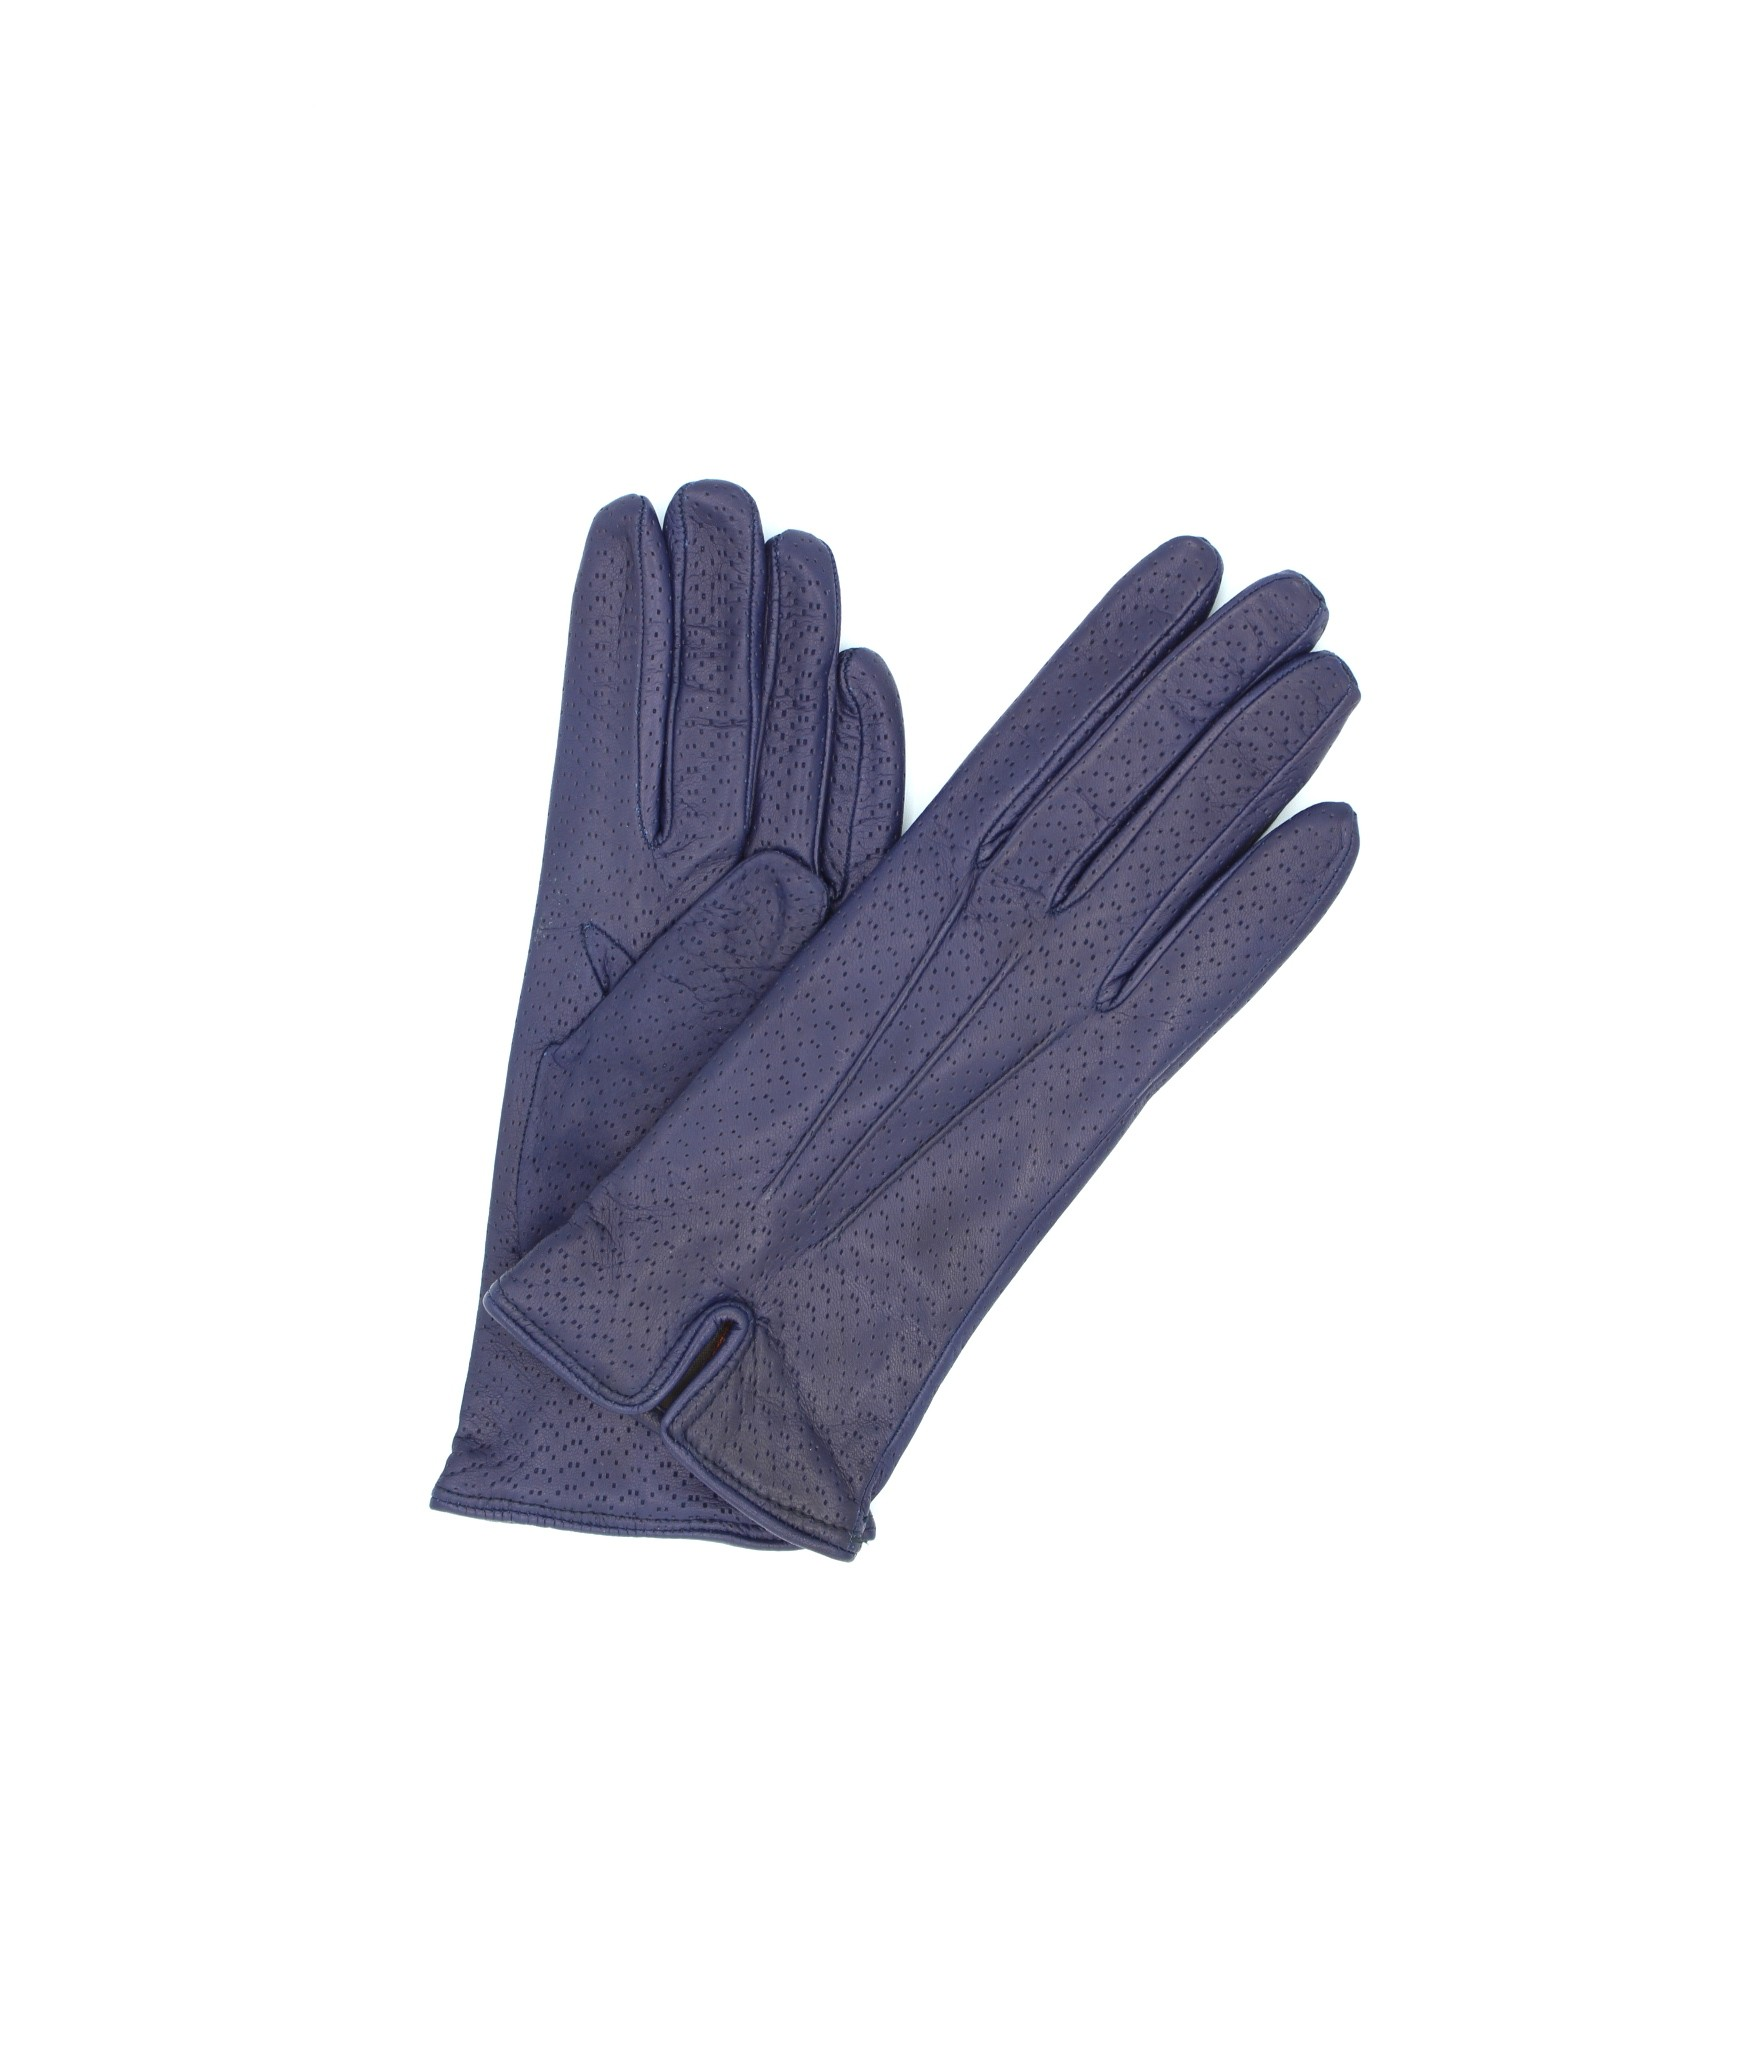 Nappa leather gloves cashmere lined Ink Blue Sermoneta Gloves